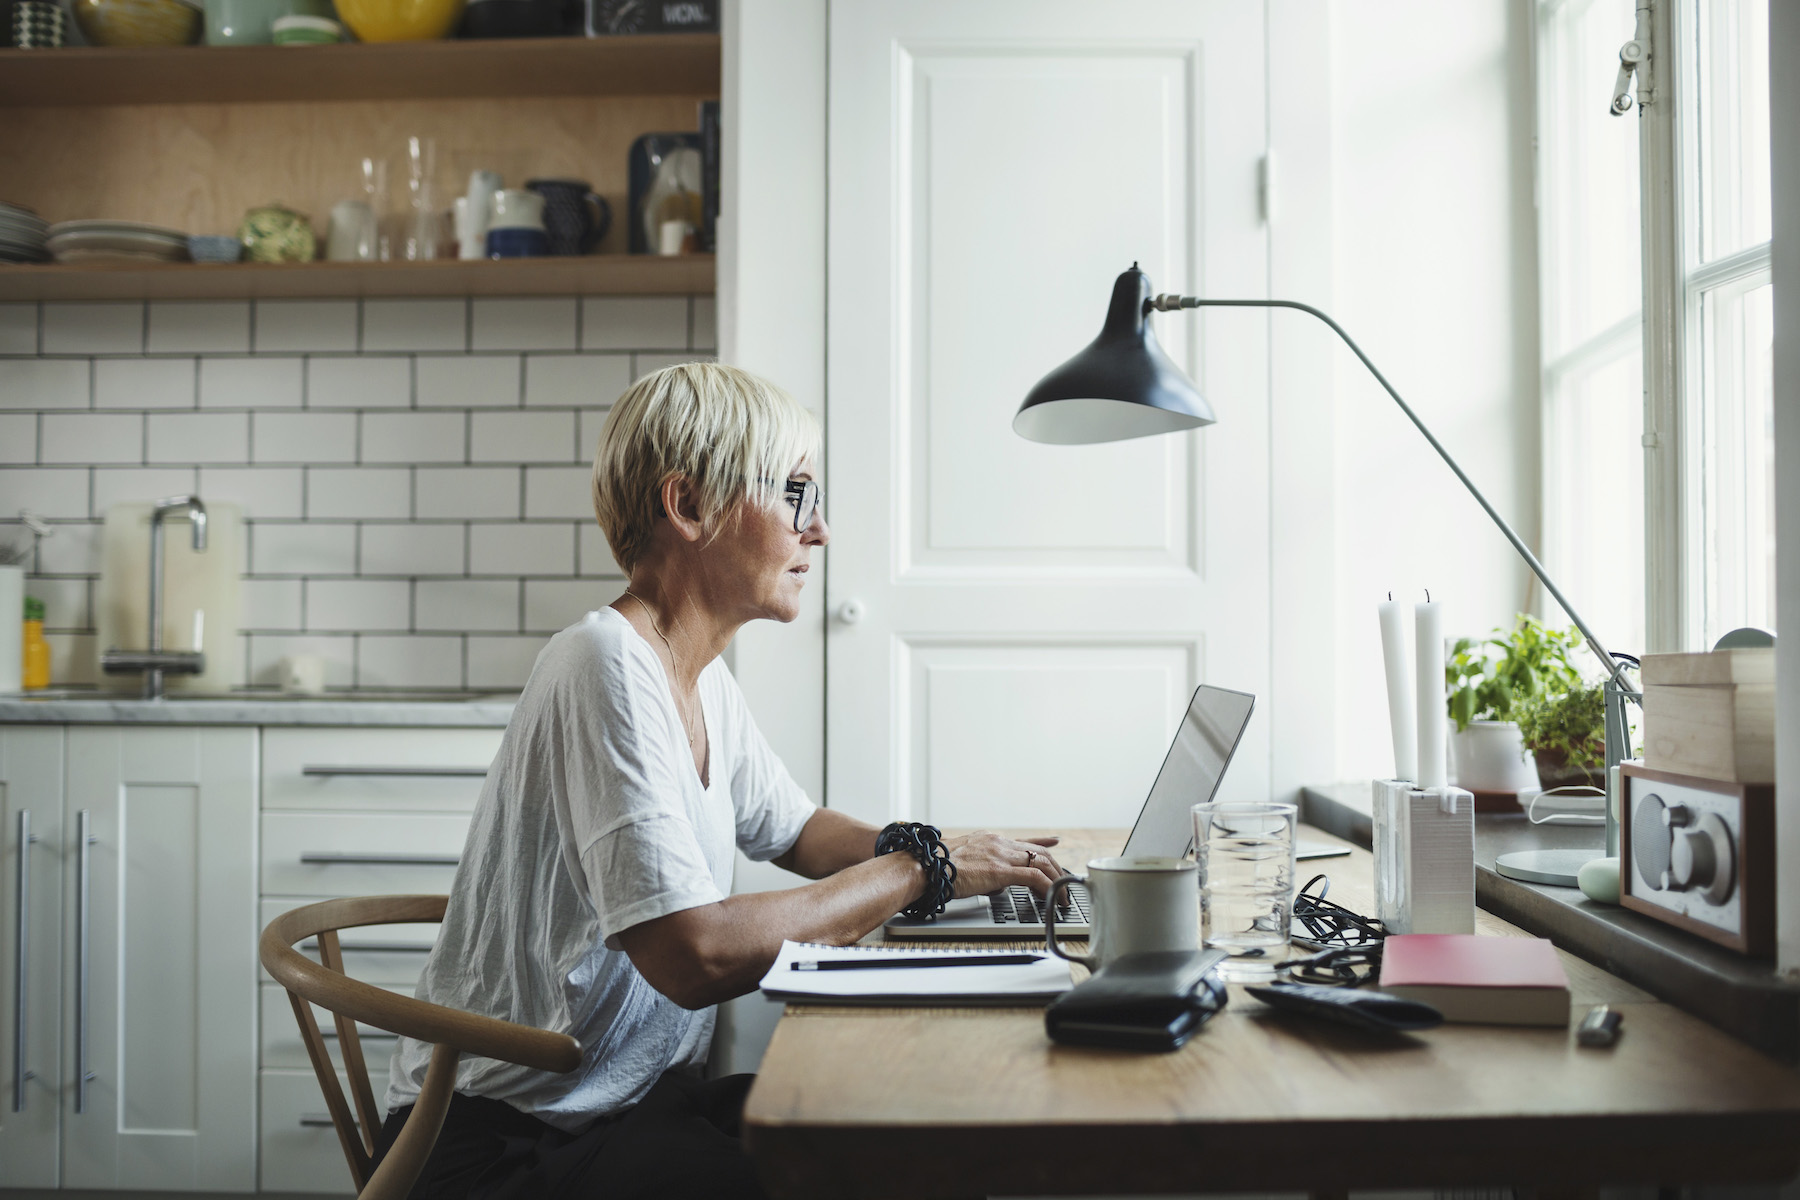 woman working at home office in kitchen